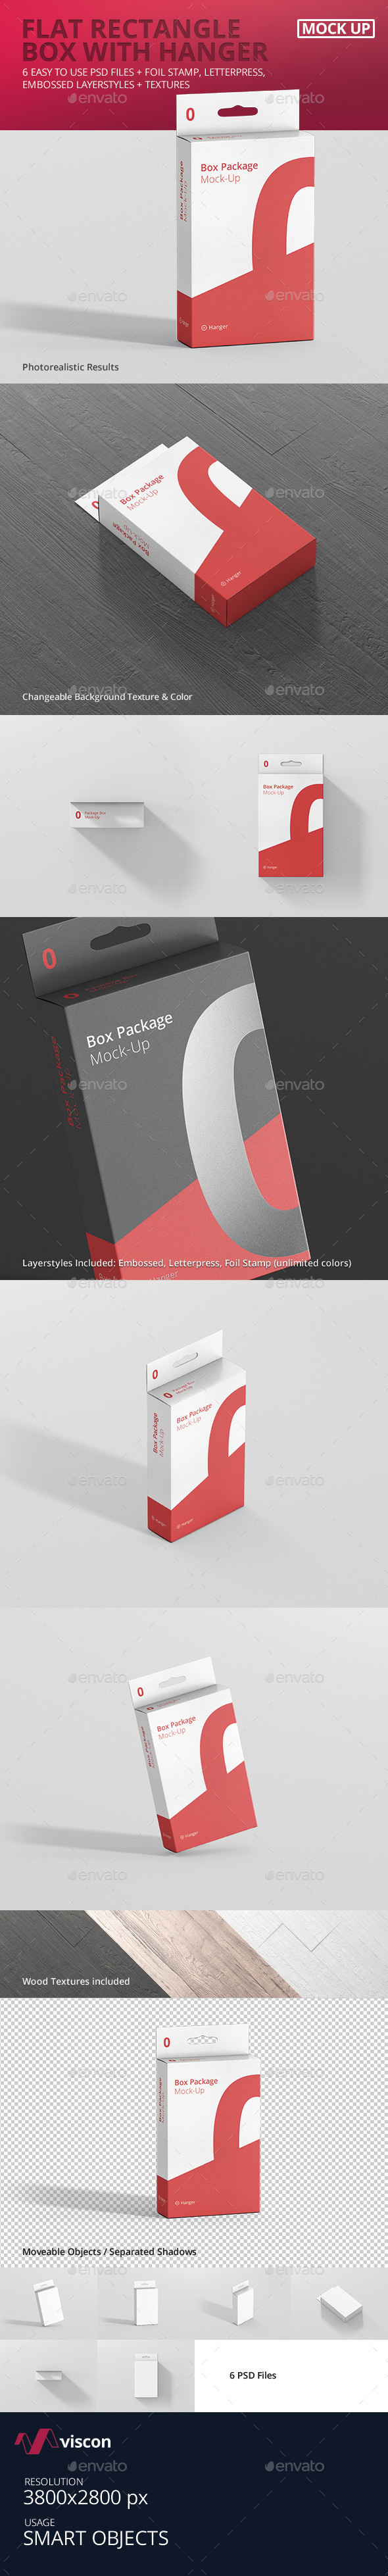 Package Box Mock-Up - Flat Rectangle with Hanger